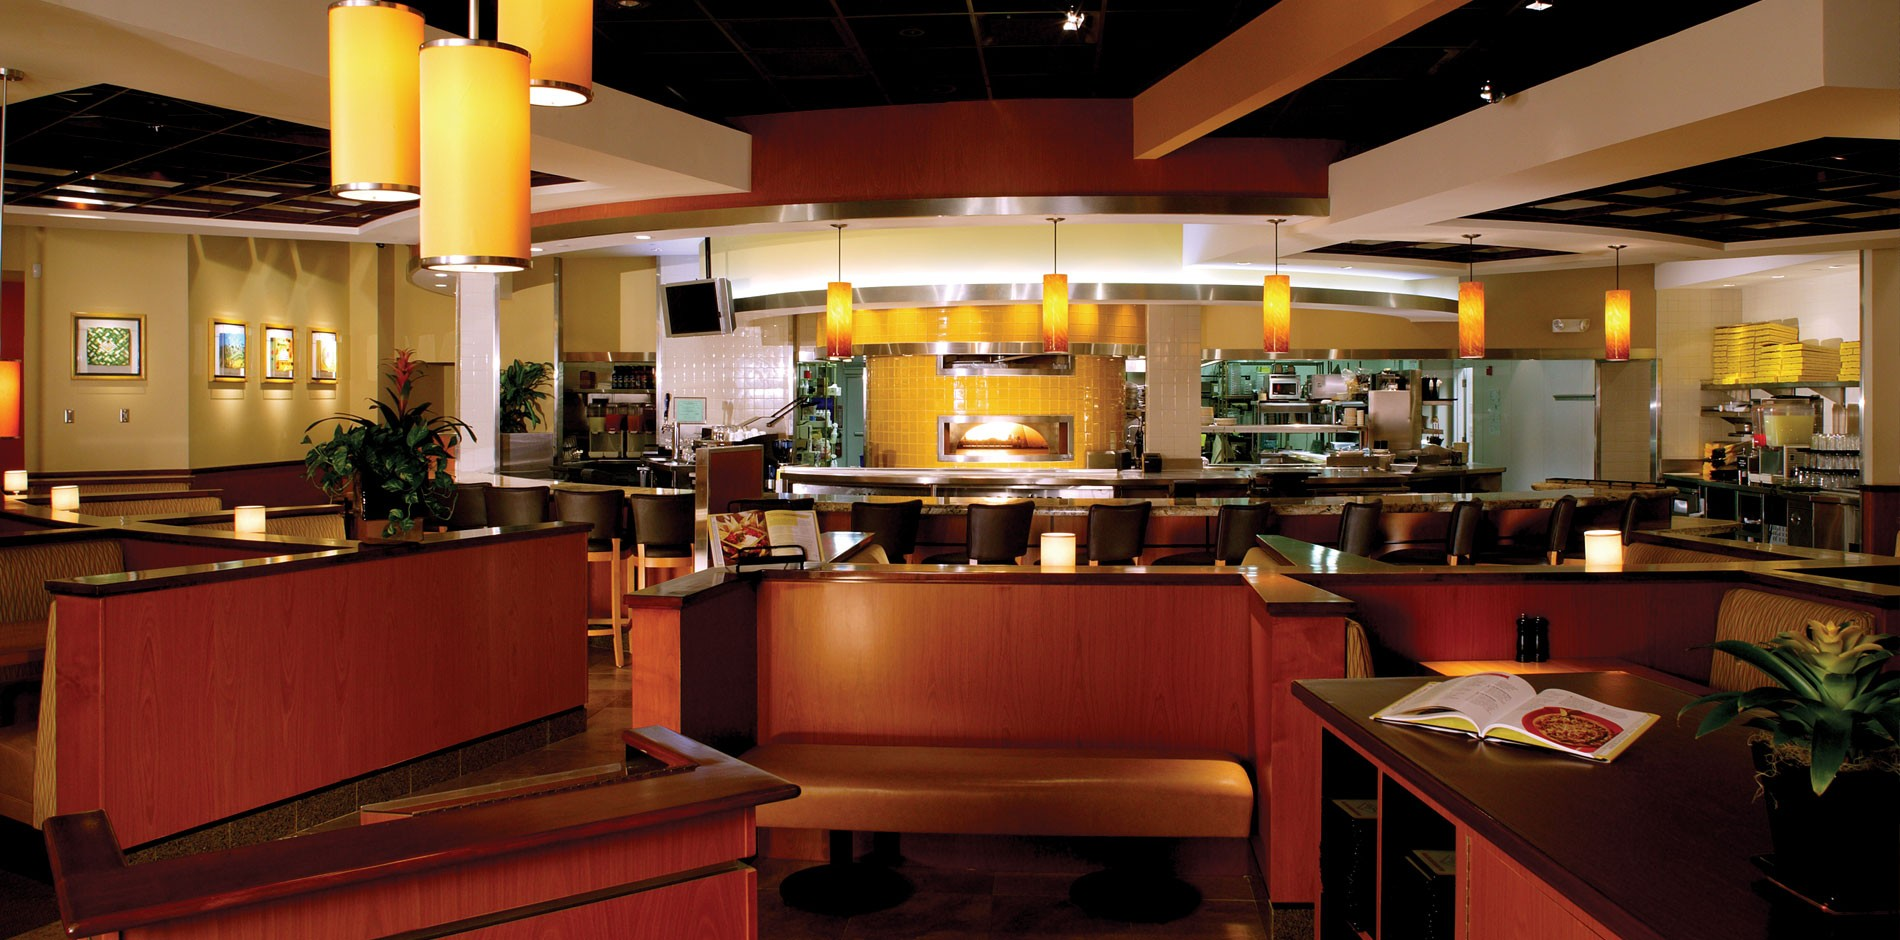 California Pizza Kitchen At University Mall Orem Ut